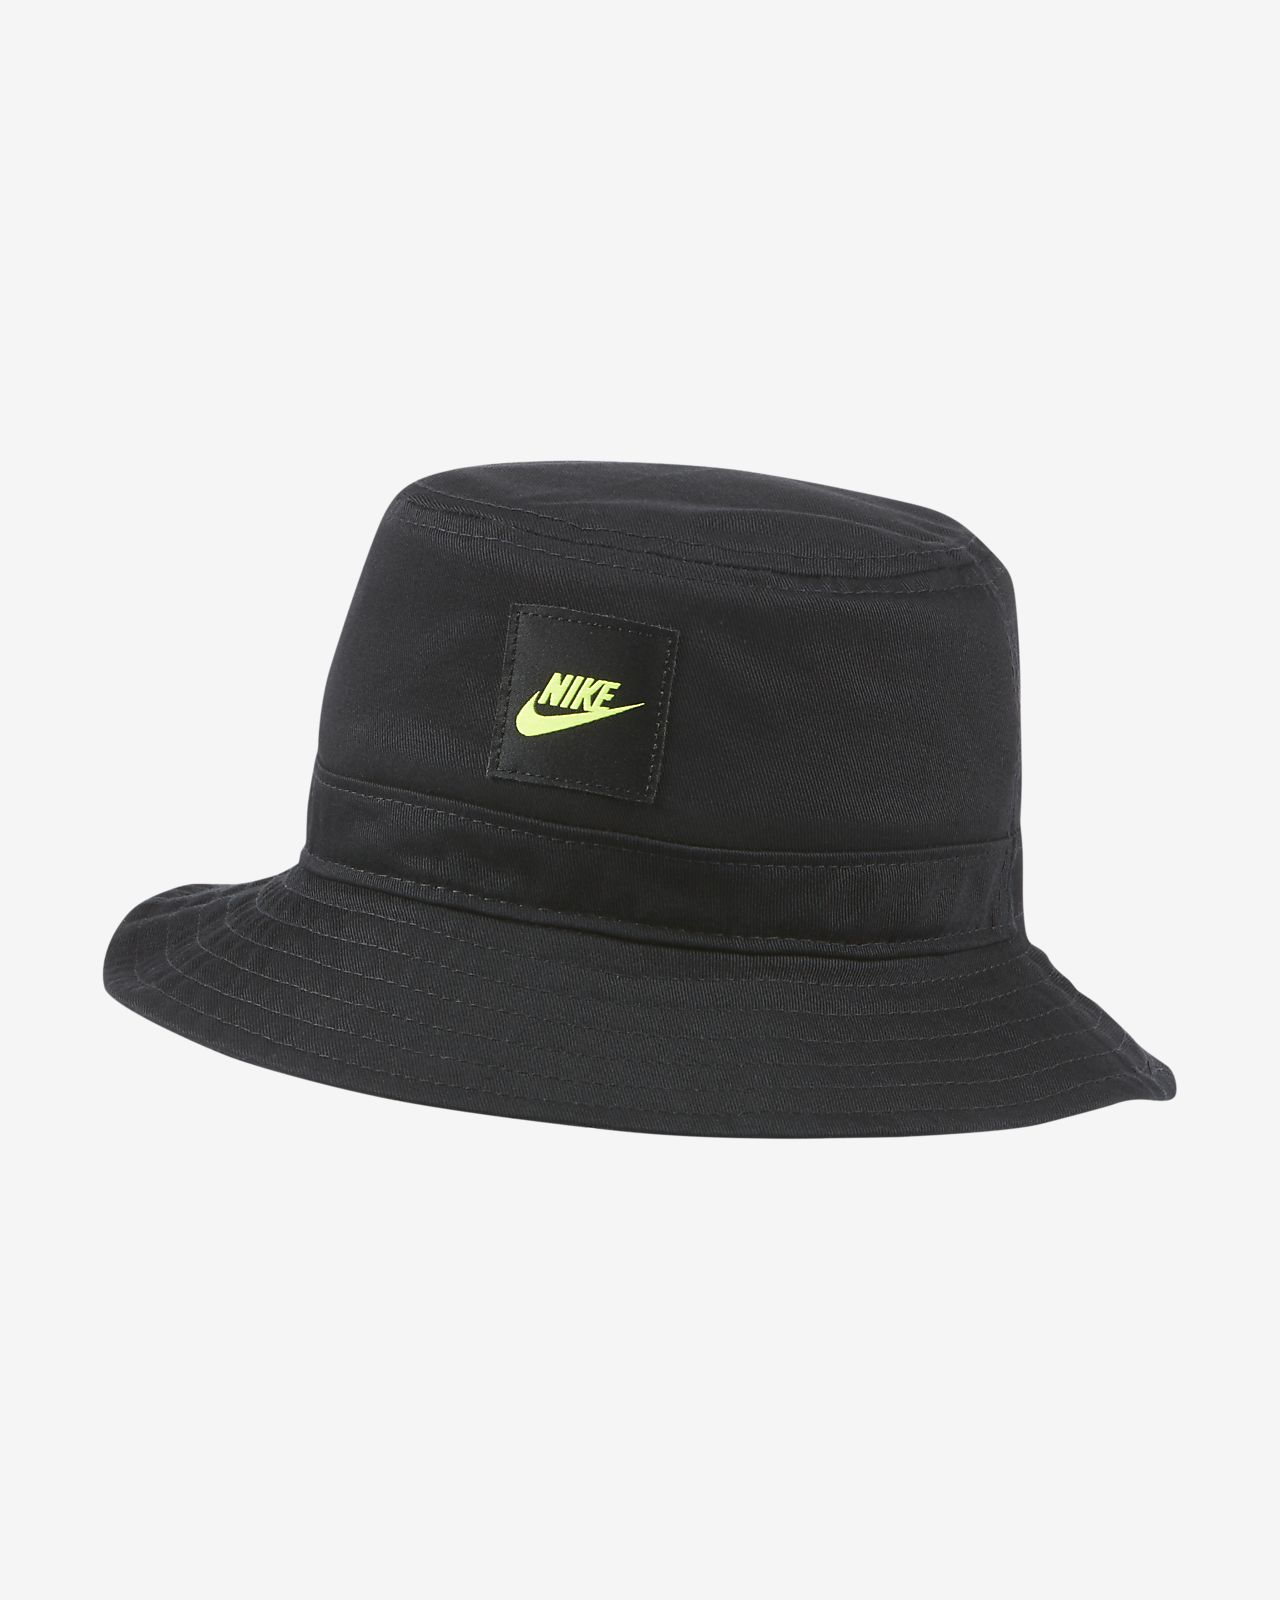 Nike Kids' Bucket Hat